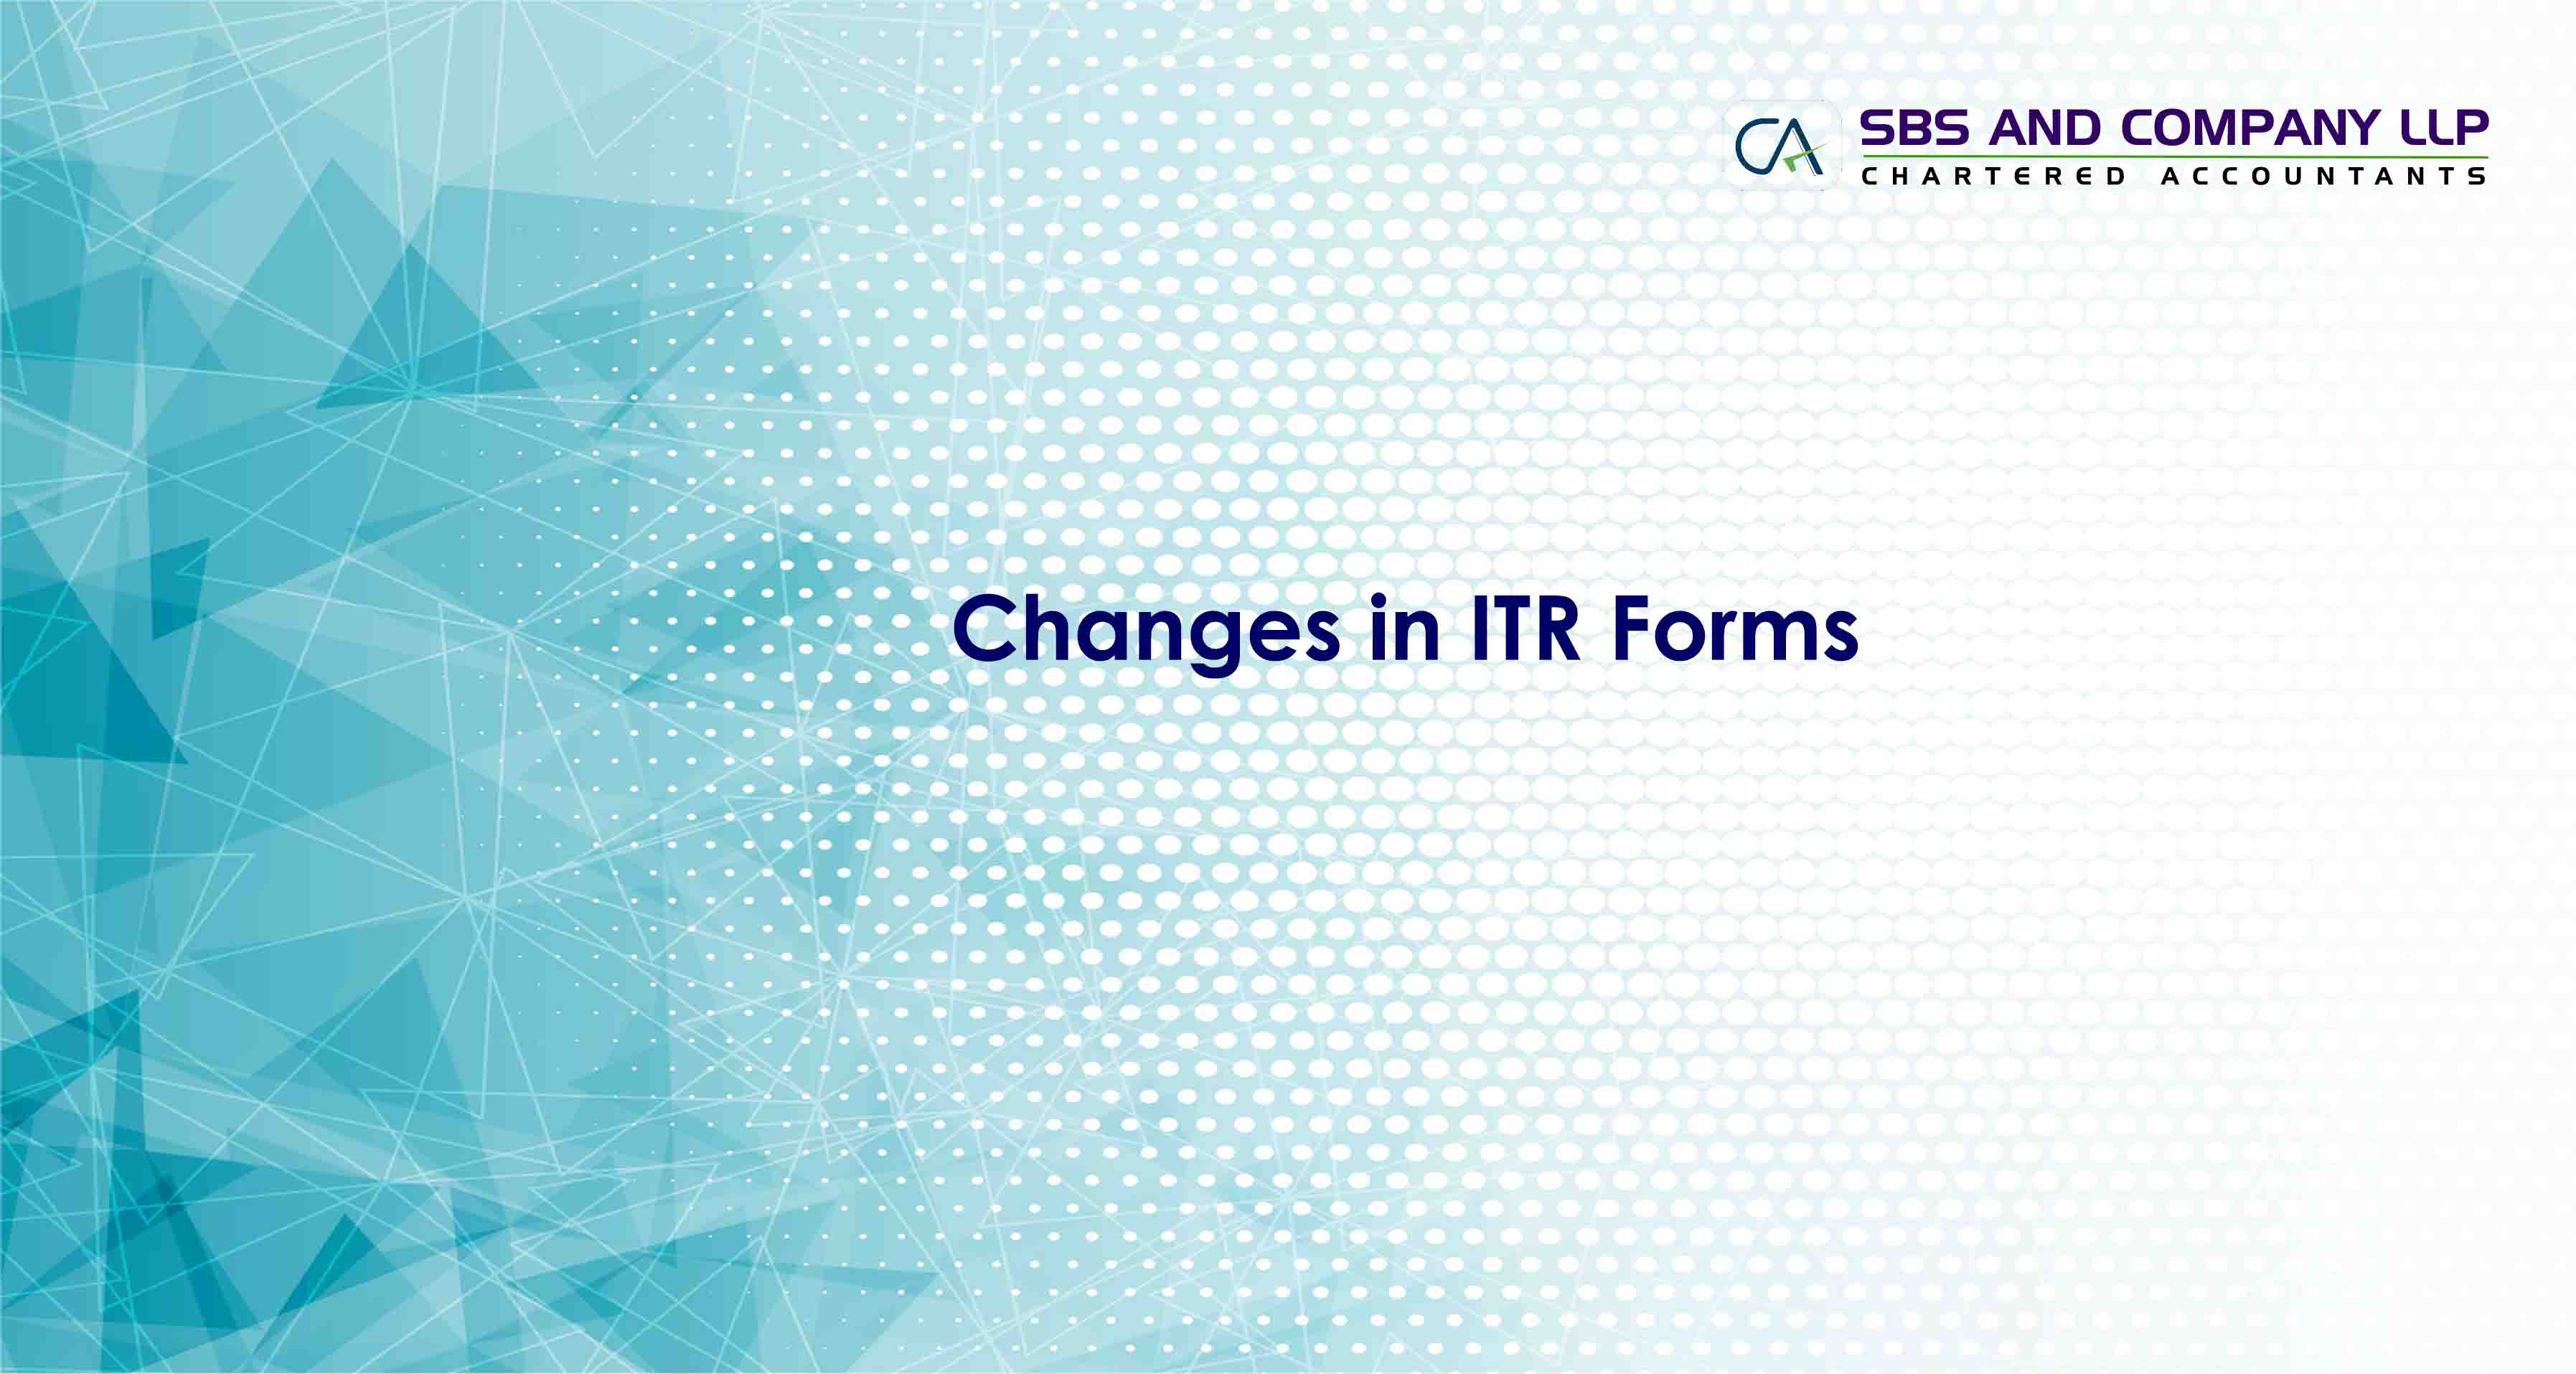 Changes in ITR Forms